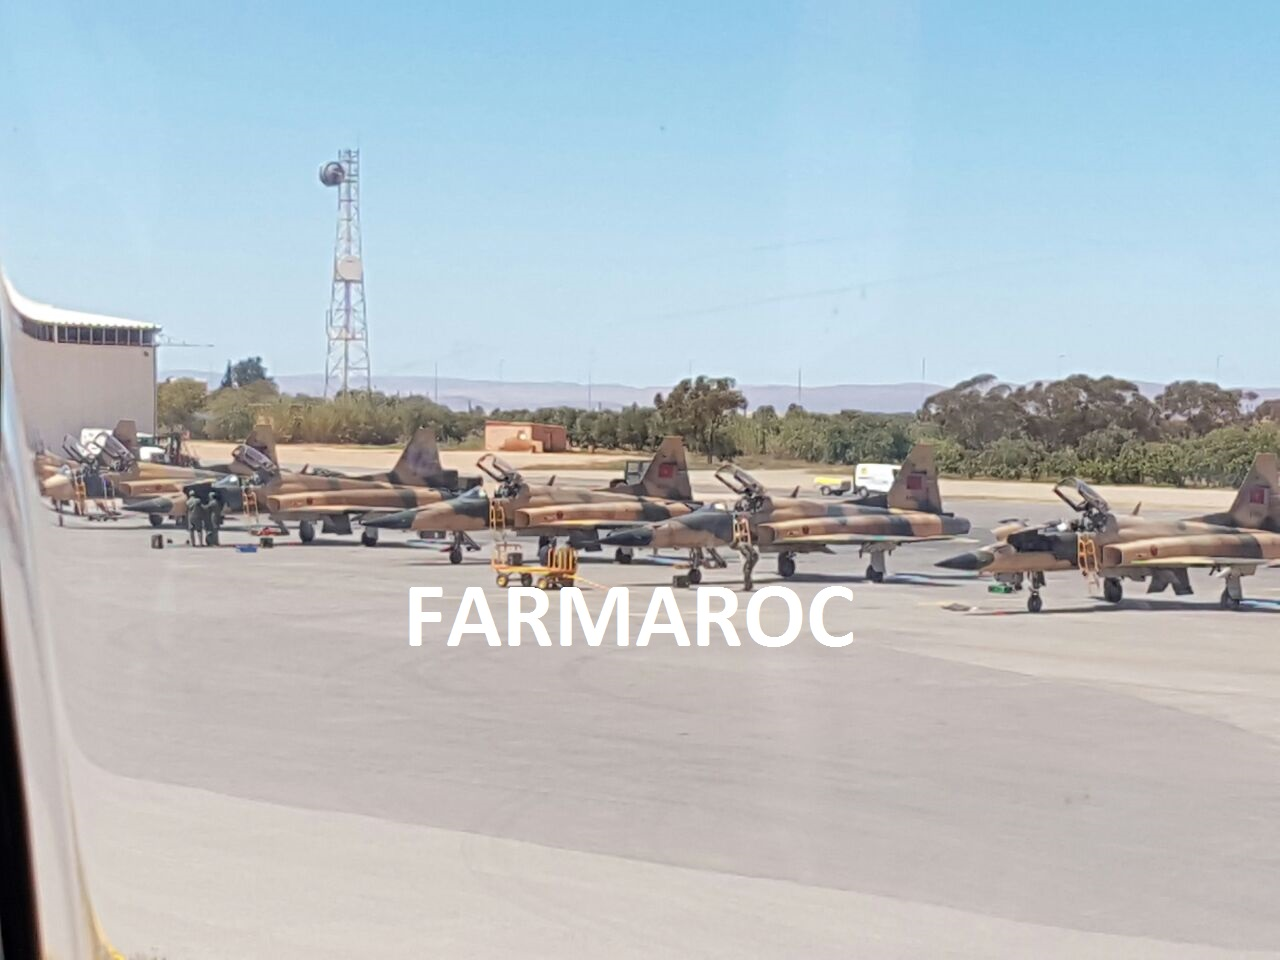 FRA: Photos F-5 marocains / Moroccan F-5  - Page 12 39929883283_51caf2bc65_o